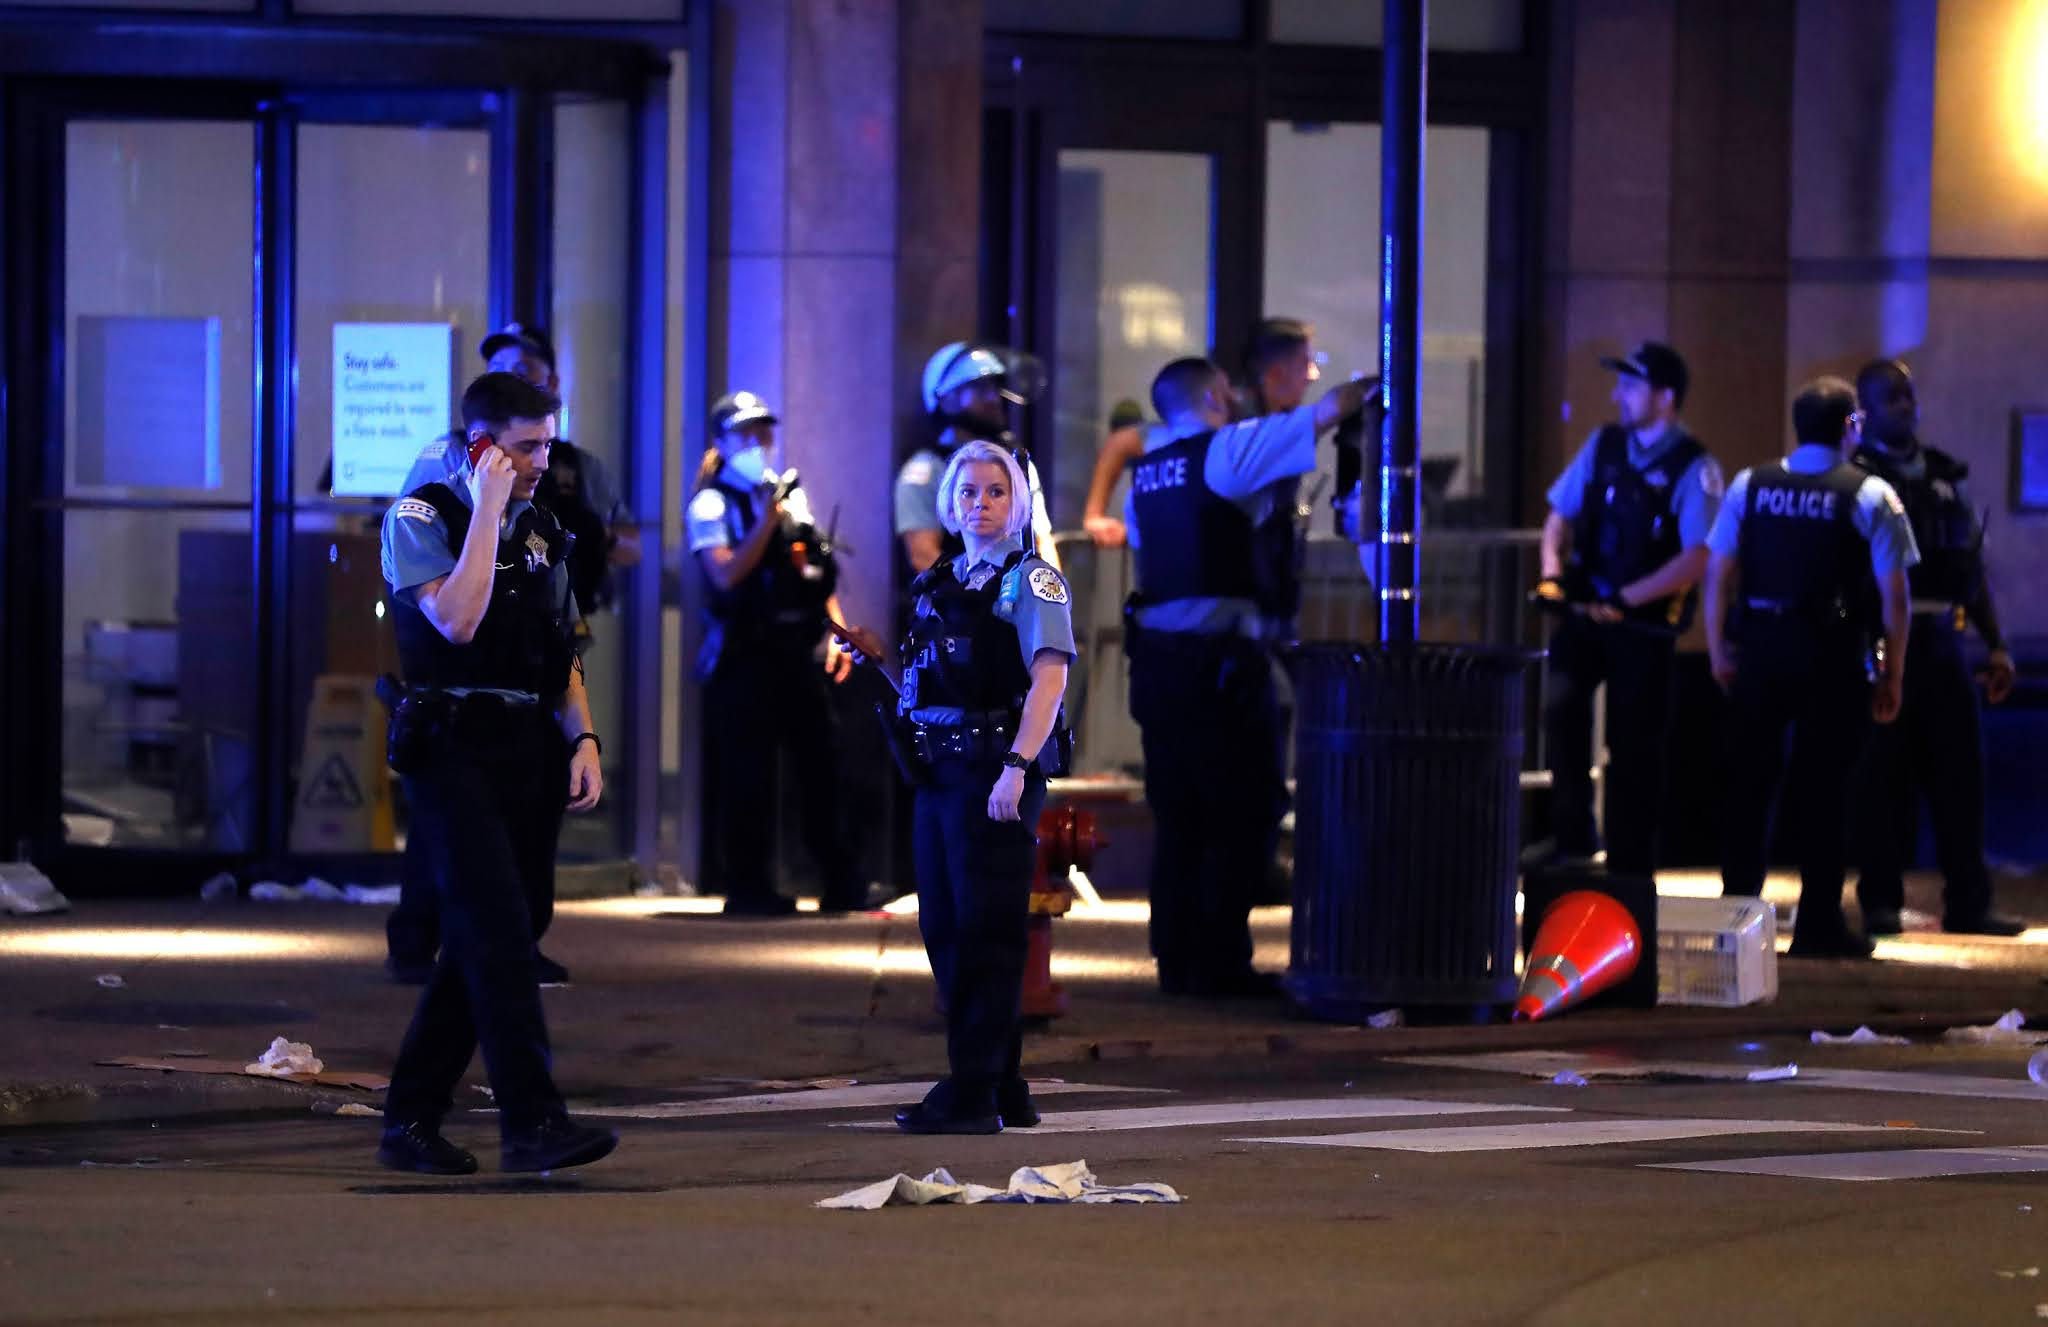 Looters smash business windows on Chicago's Magnificent Mile